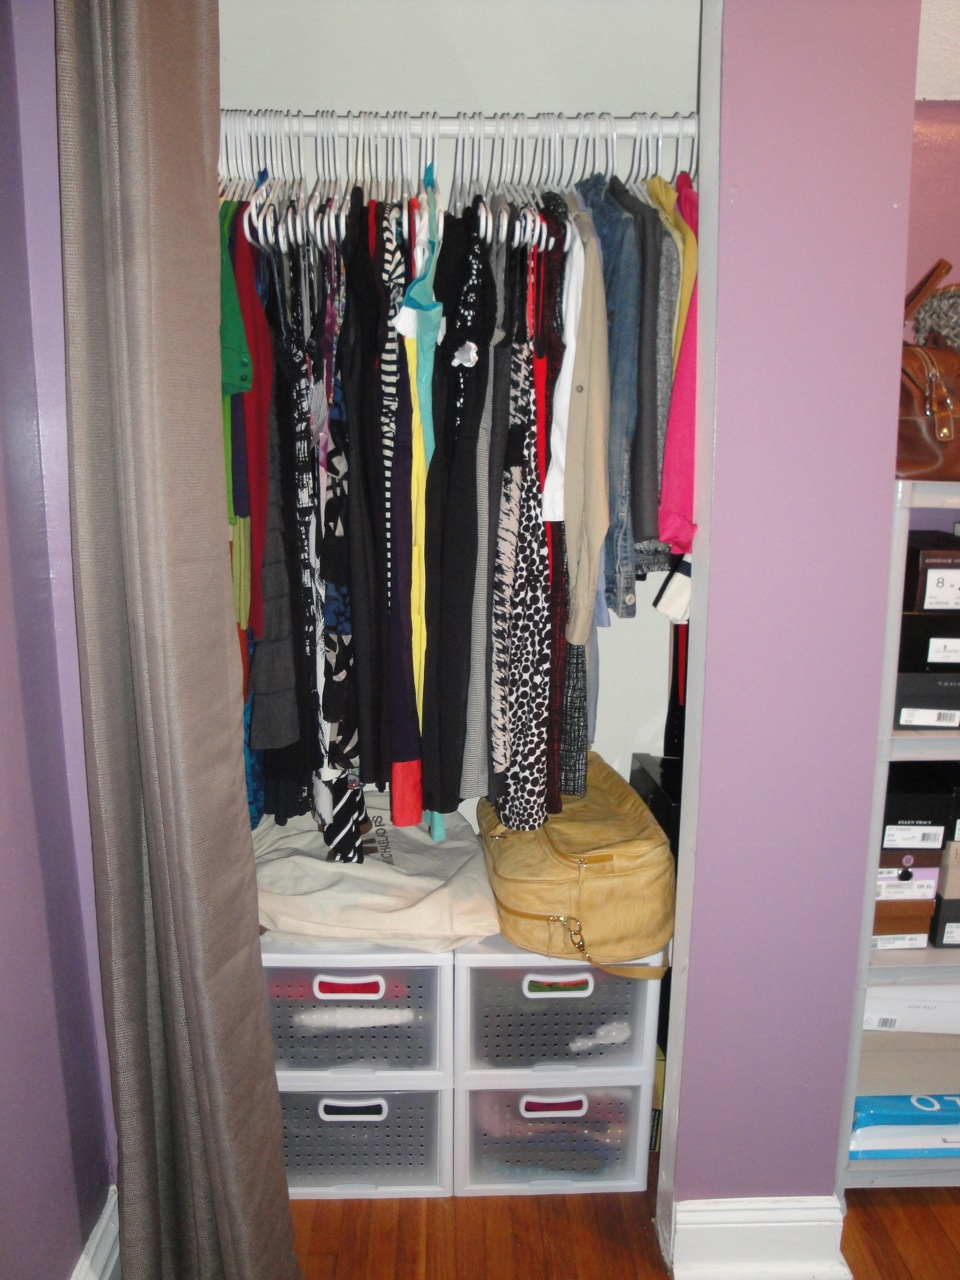 The newly improved and organized closet  L to R  Cardigans  dresses   casual  dressy  work   blazers  Target Home window panel   24 99  on a rod    9 99  add. Organizing a Small Closet on a Budget   Economy of Style